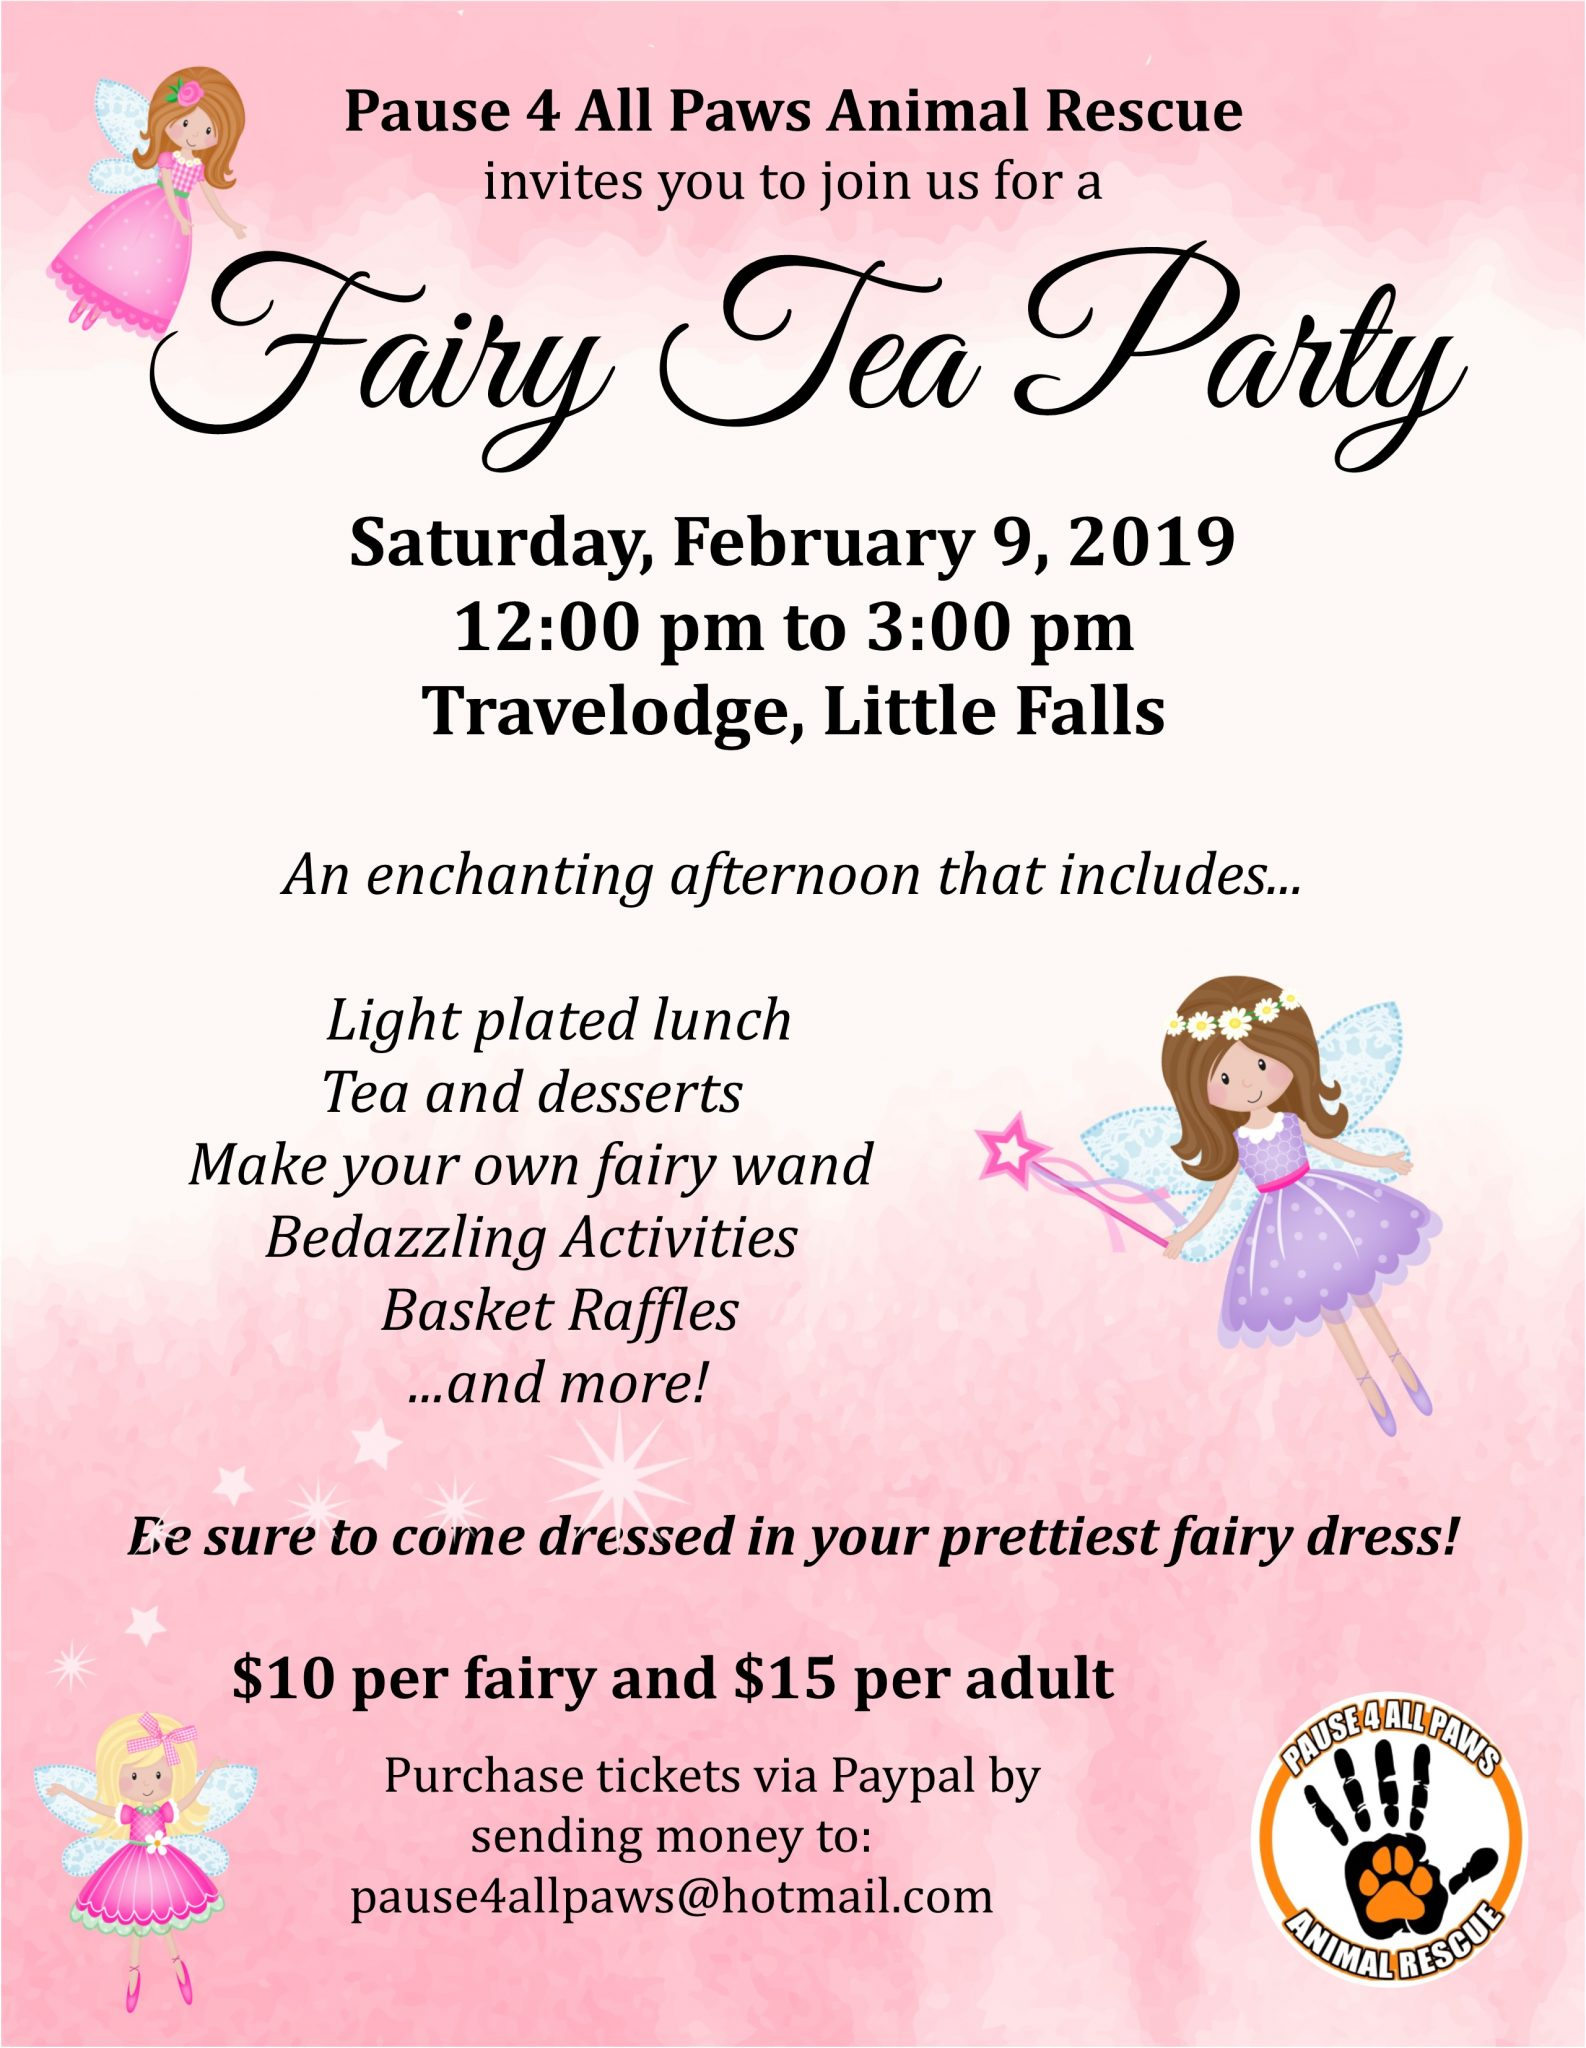 Pause 4 All Paws Animal Rescue Fairy Tea Party